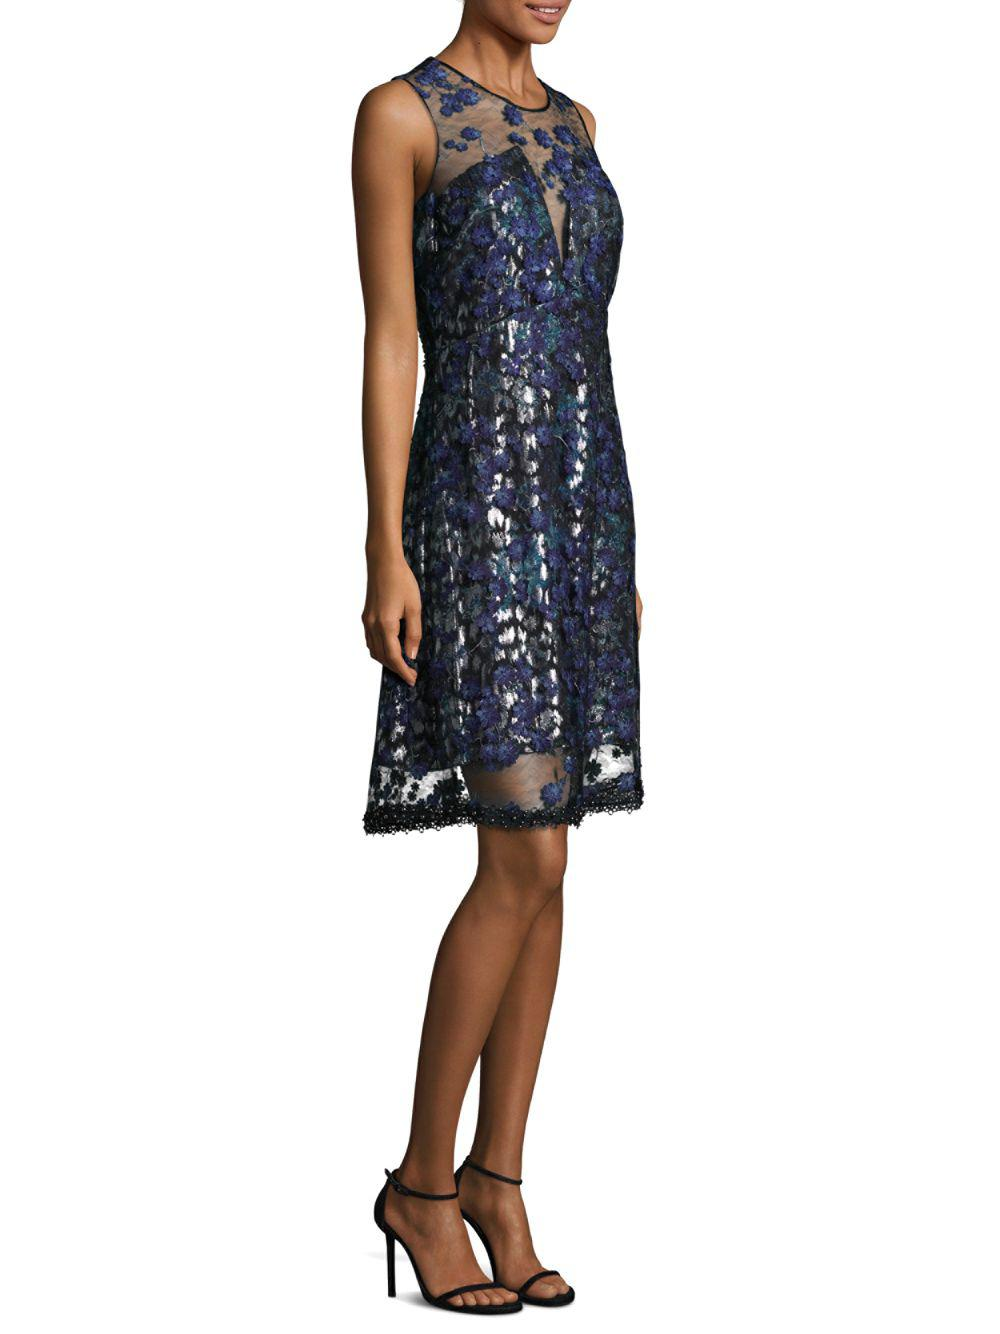 34c6c24a8587 Elie Tahari Olive Embroidered Illusion Dress in Blue - Save 55% - Lyst